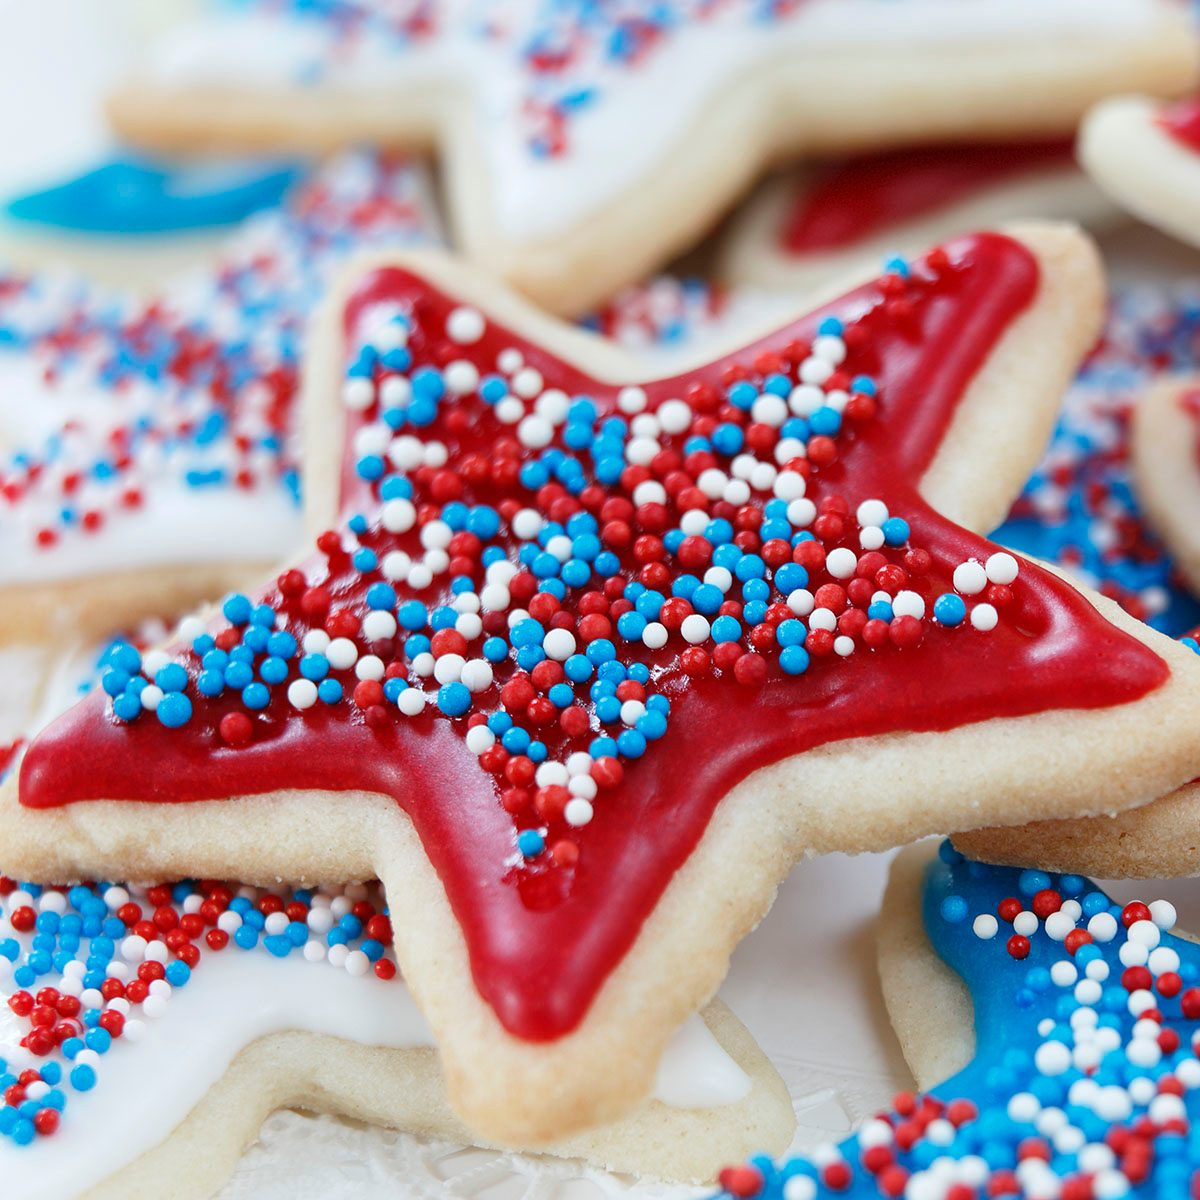 Star sugar cookies decorated for 4th of July Independence day celebration in America. Icing and sprinkles in red, white, and blue.